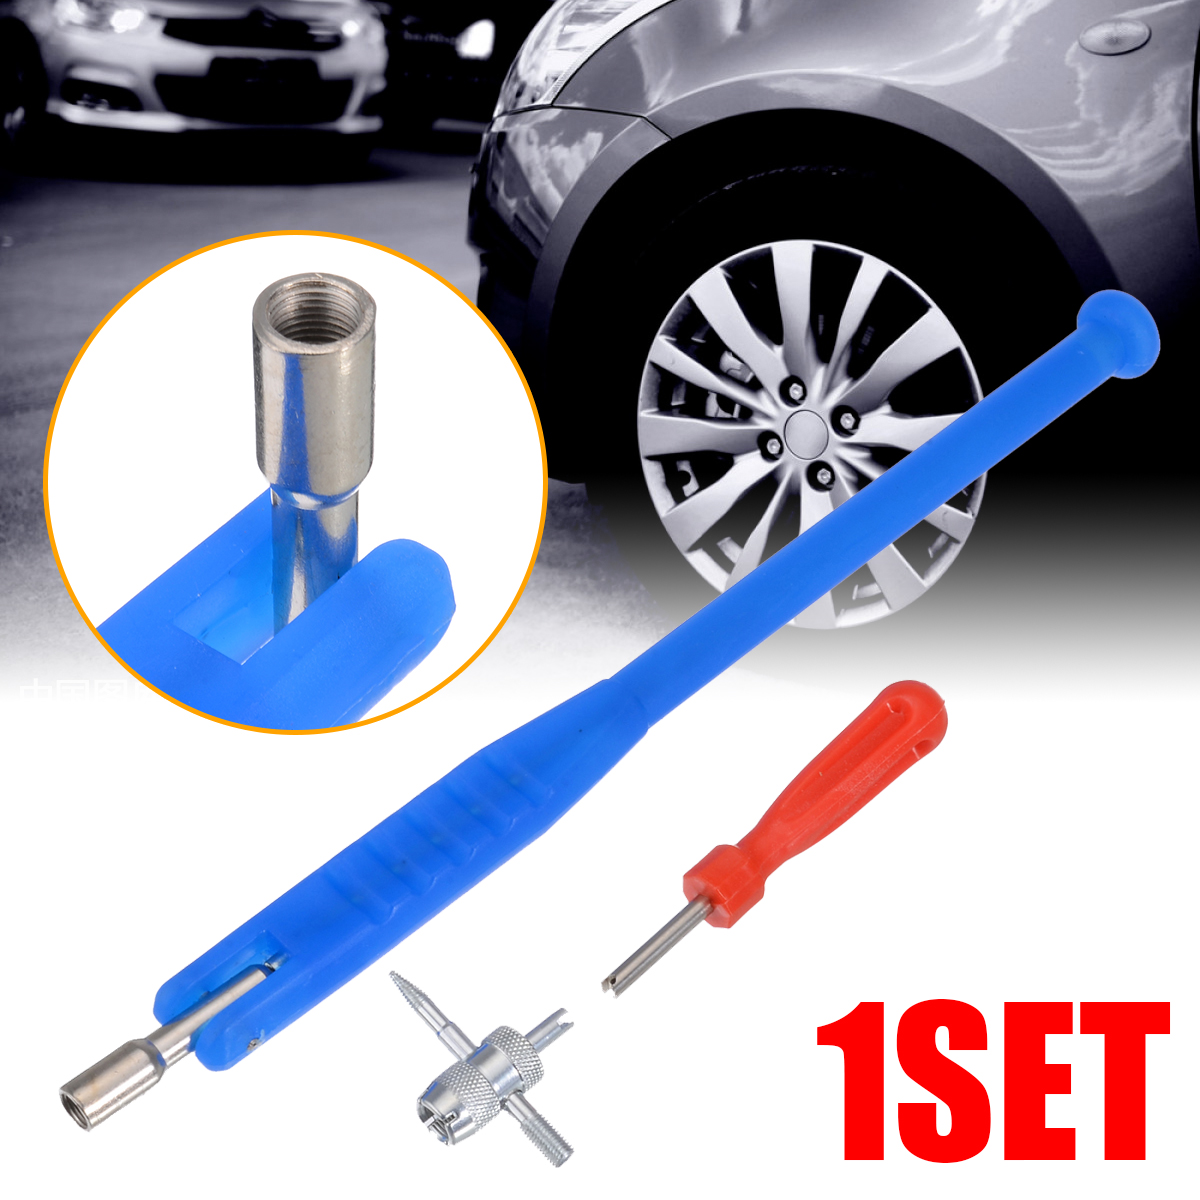 2019 New 3pcs/set Car Truck Tyre Valve Stem Puller Core Remover Repair Install Tool Kit